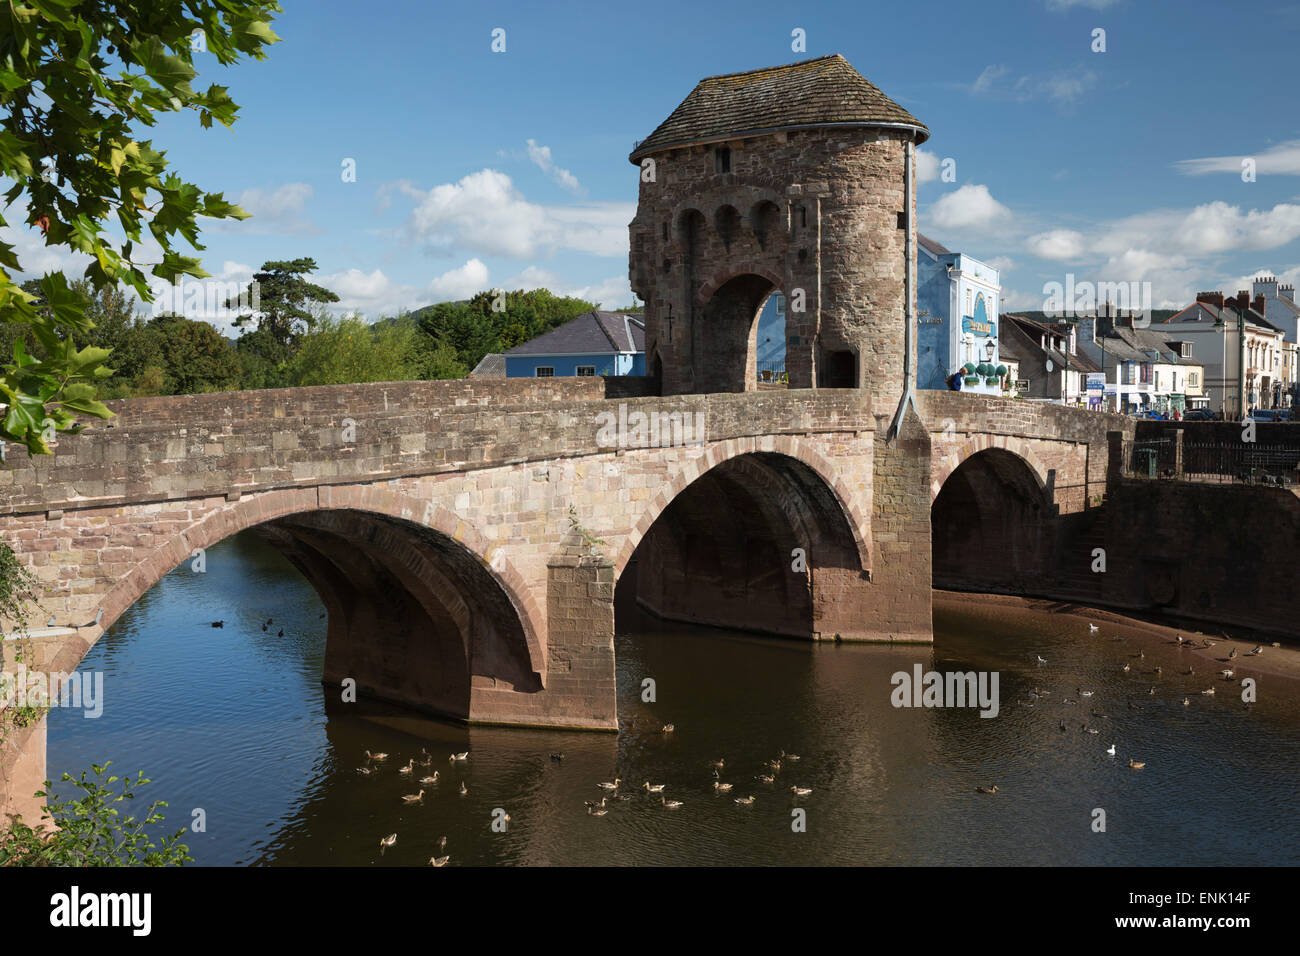 Monnow Bridge and Gate over the River Monnow, Monmouth, Monmouthshire, Wales, United Kingdom, Europe - Stock Image